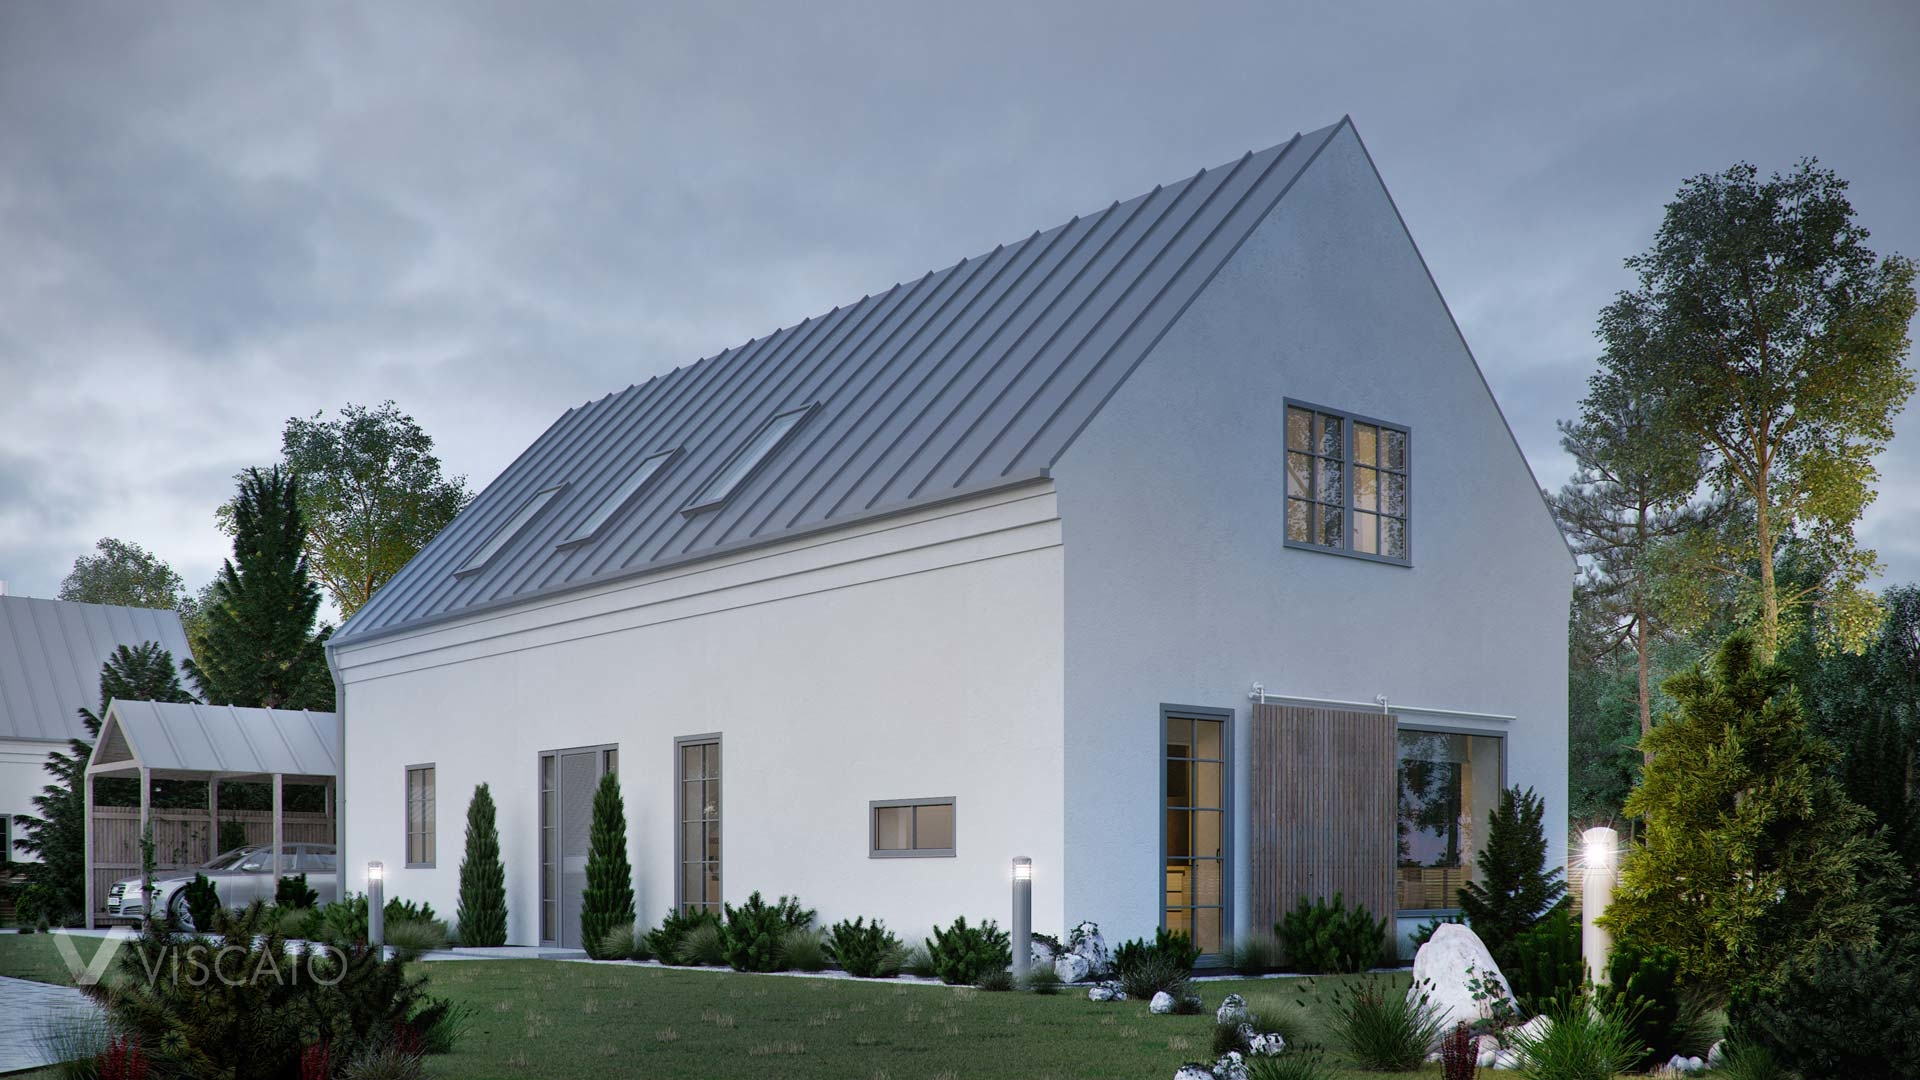 a detached house in Vellinge with a roofed parking bay- 3D rendering